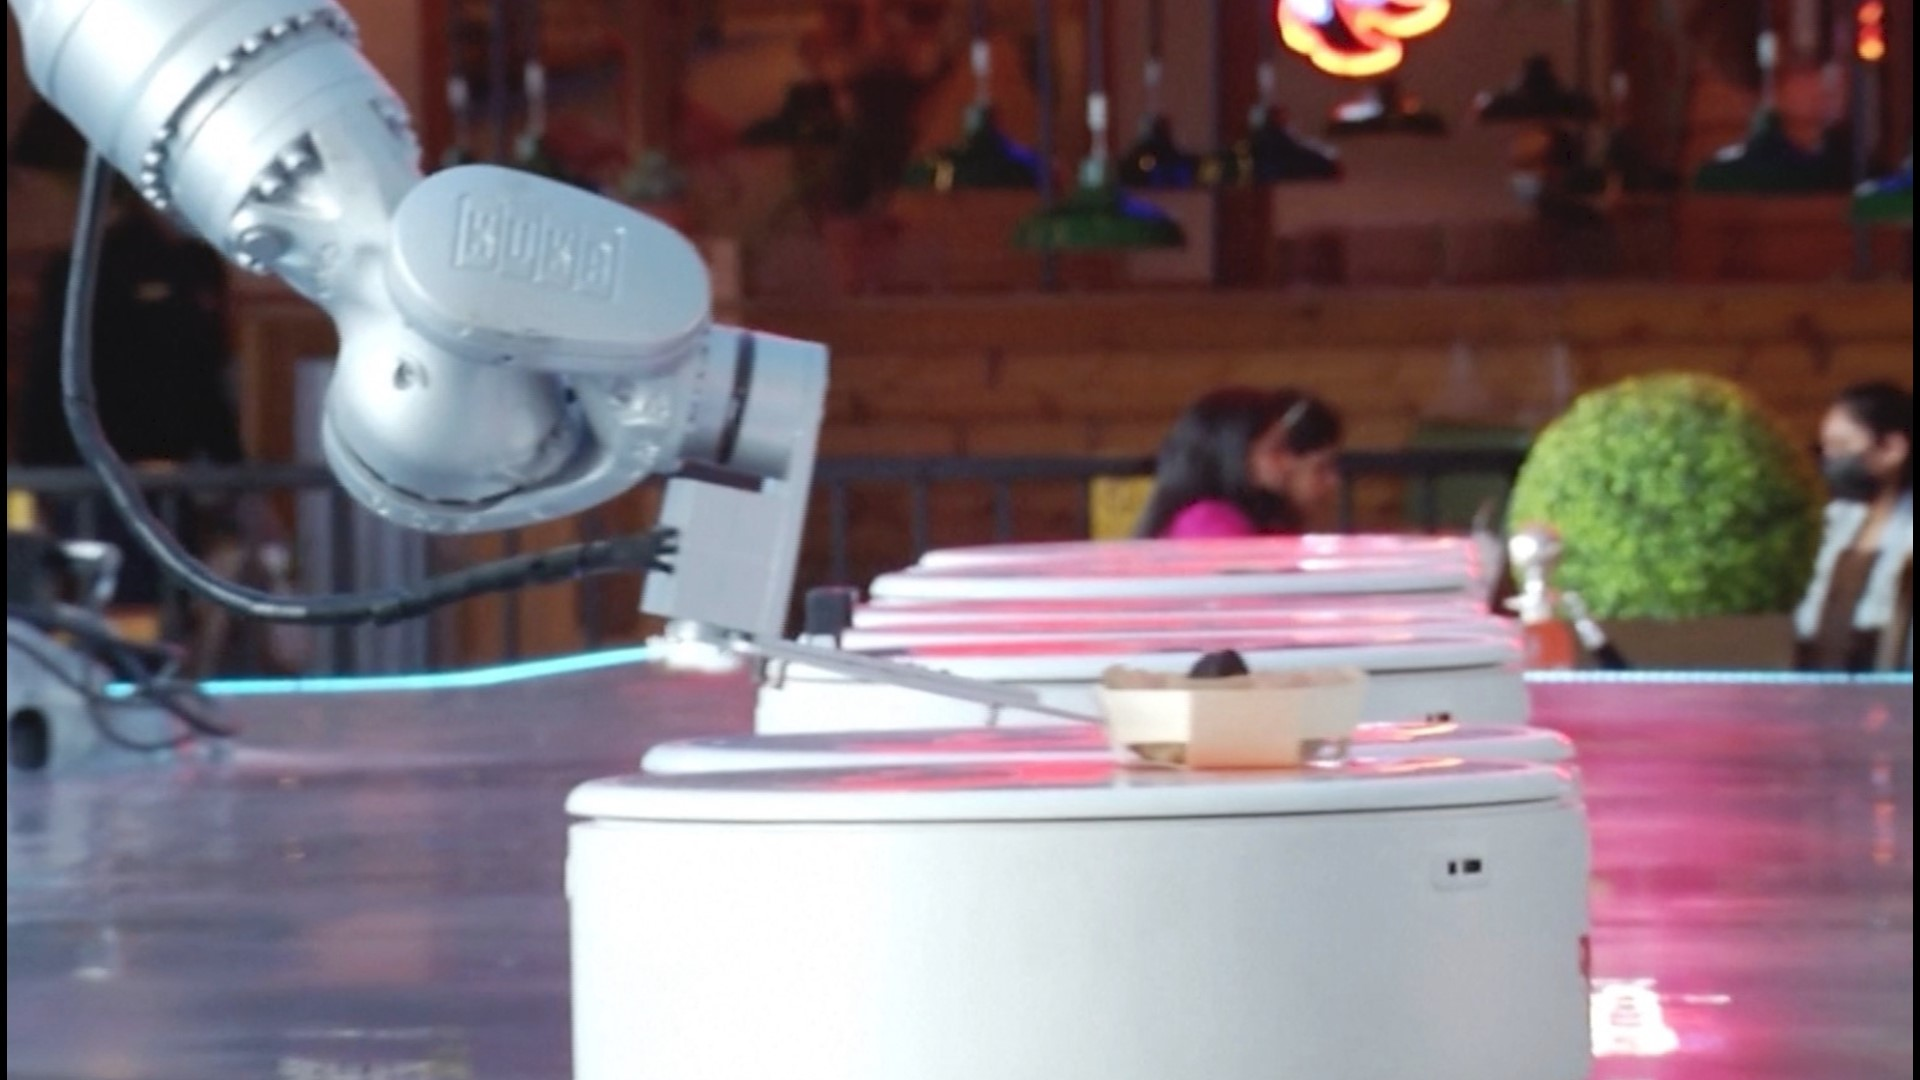 Future Technology- World's First Robot Cafe!! – No Waiters, Just Robots!! – Dubai